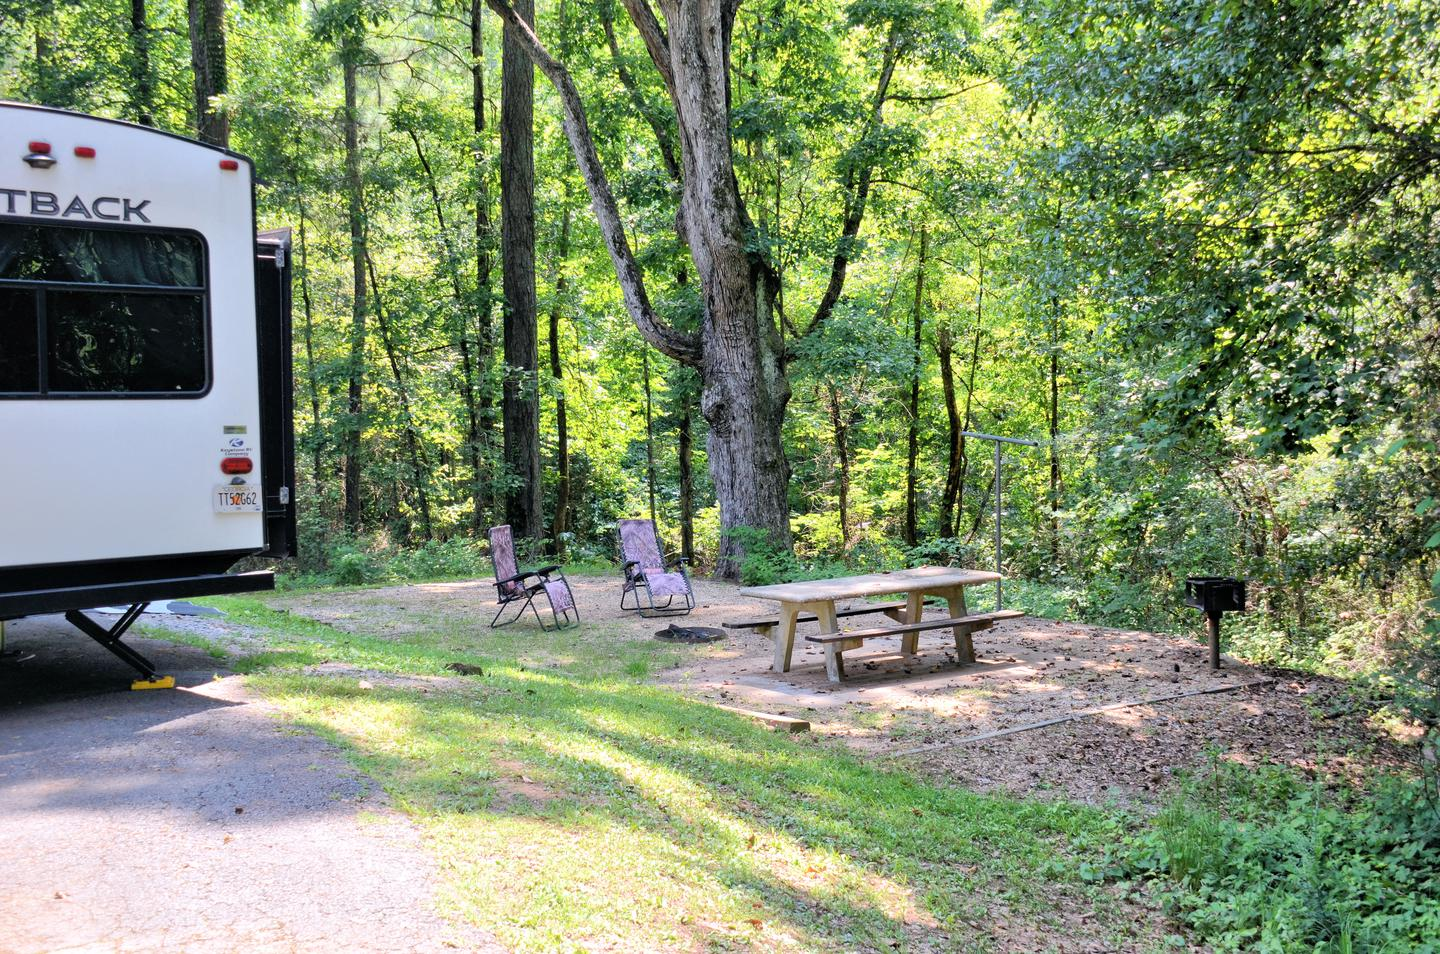 Campsite view.Sweetwater Campground, campsite 14.